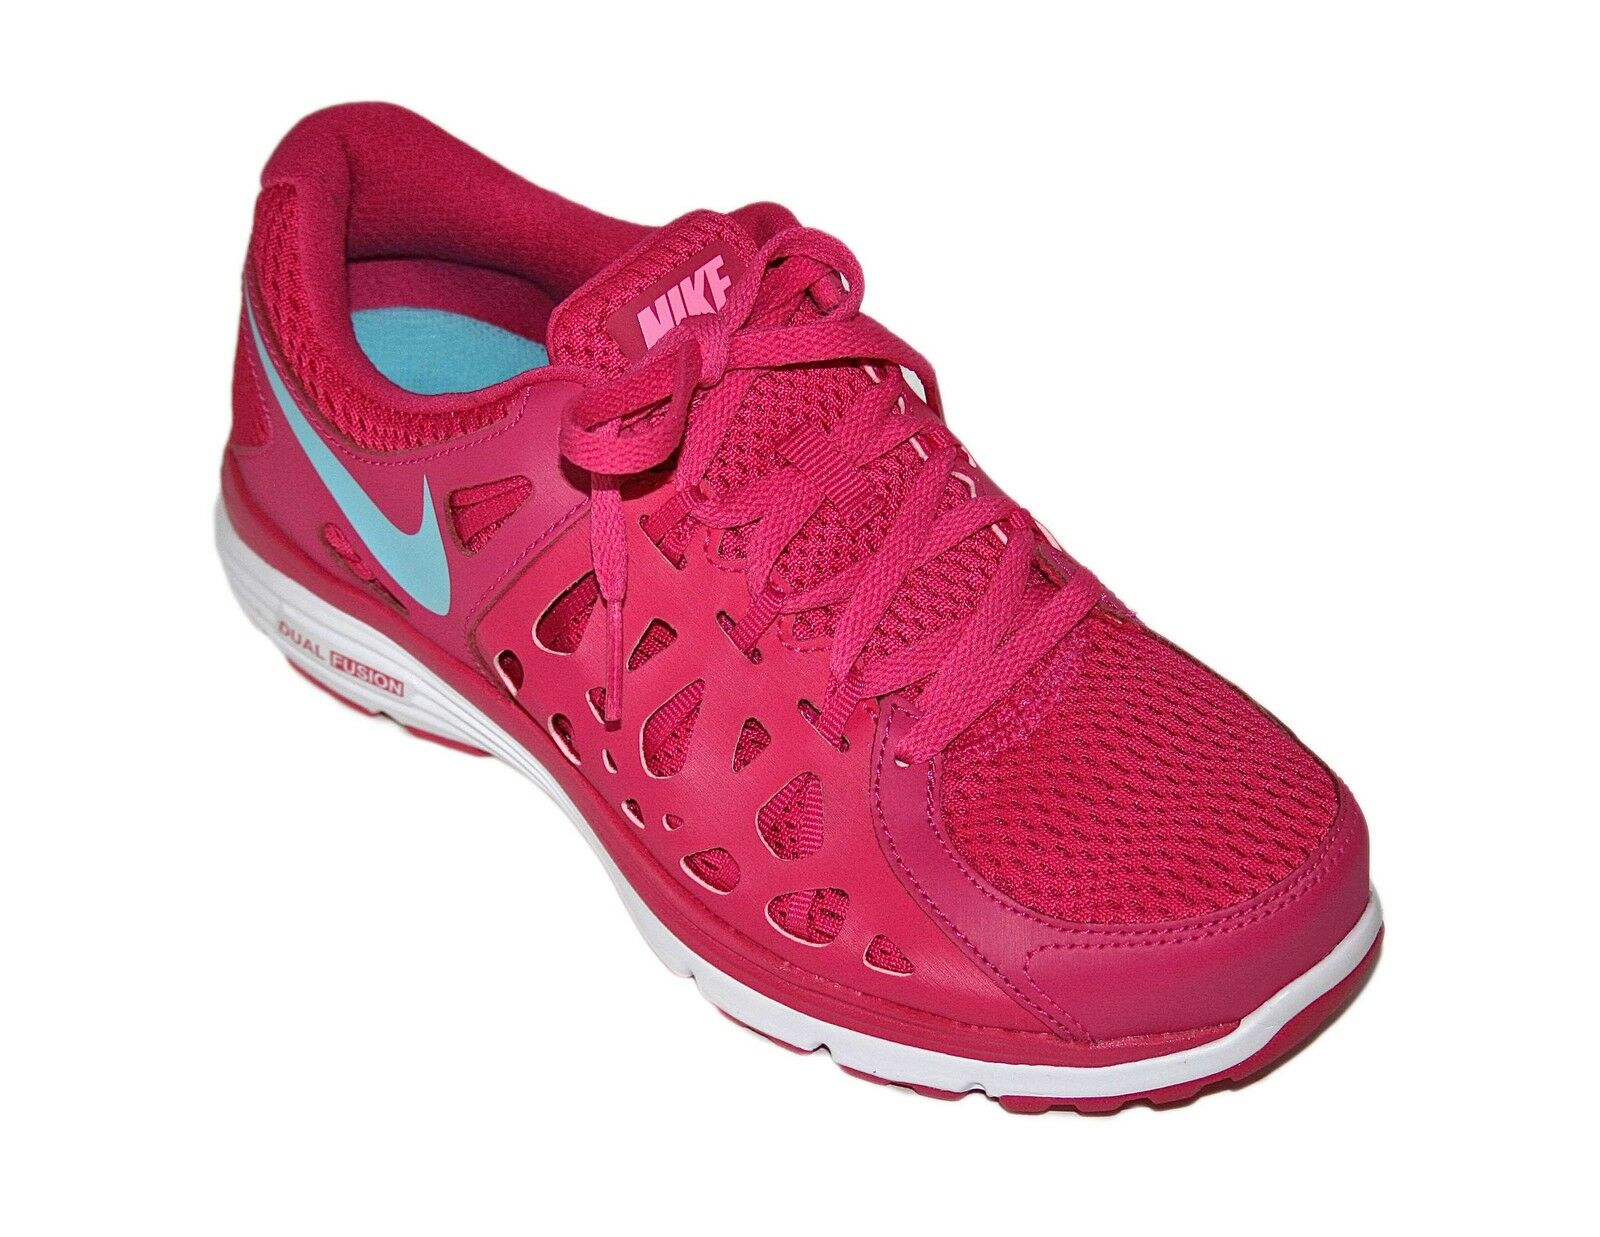 NIKE DUAL FUSION RUN2 PINK blueE WHITE Women's RUNNING SHOES 6.5M